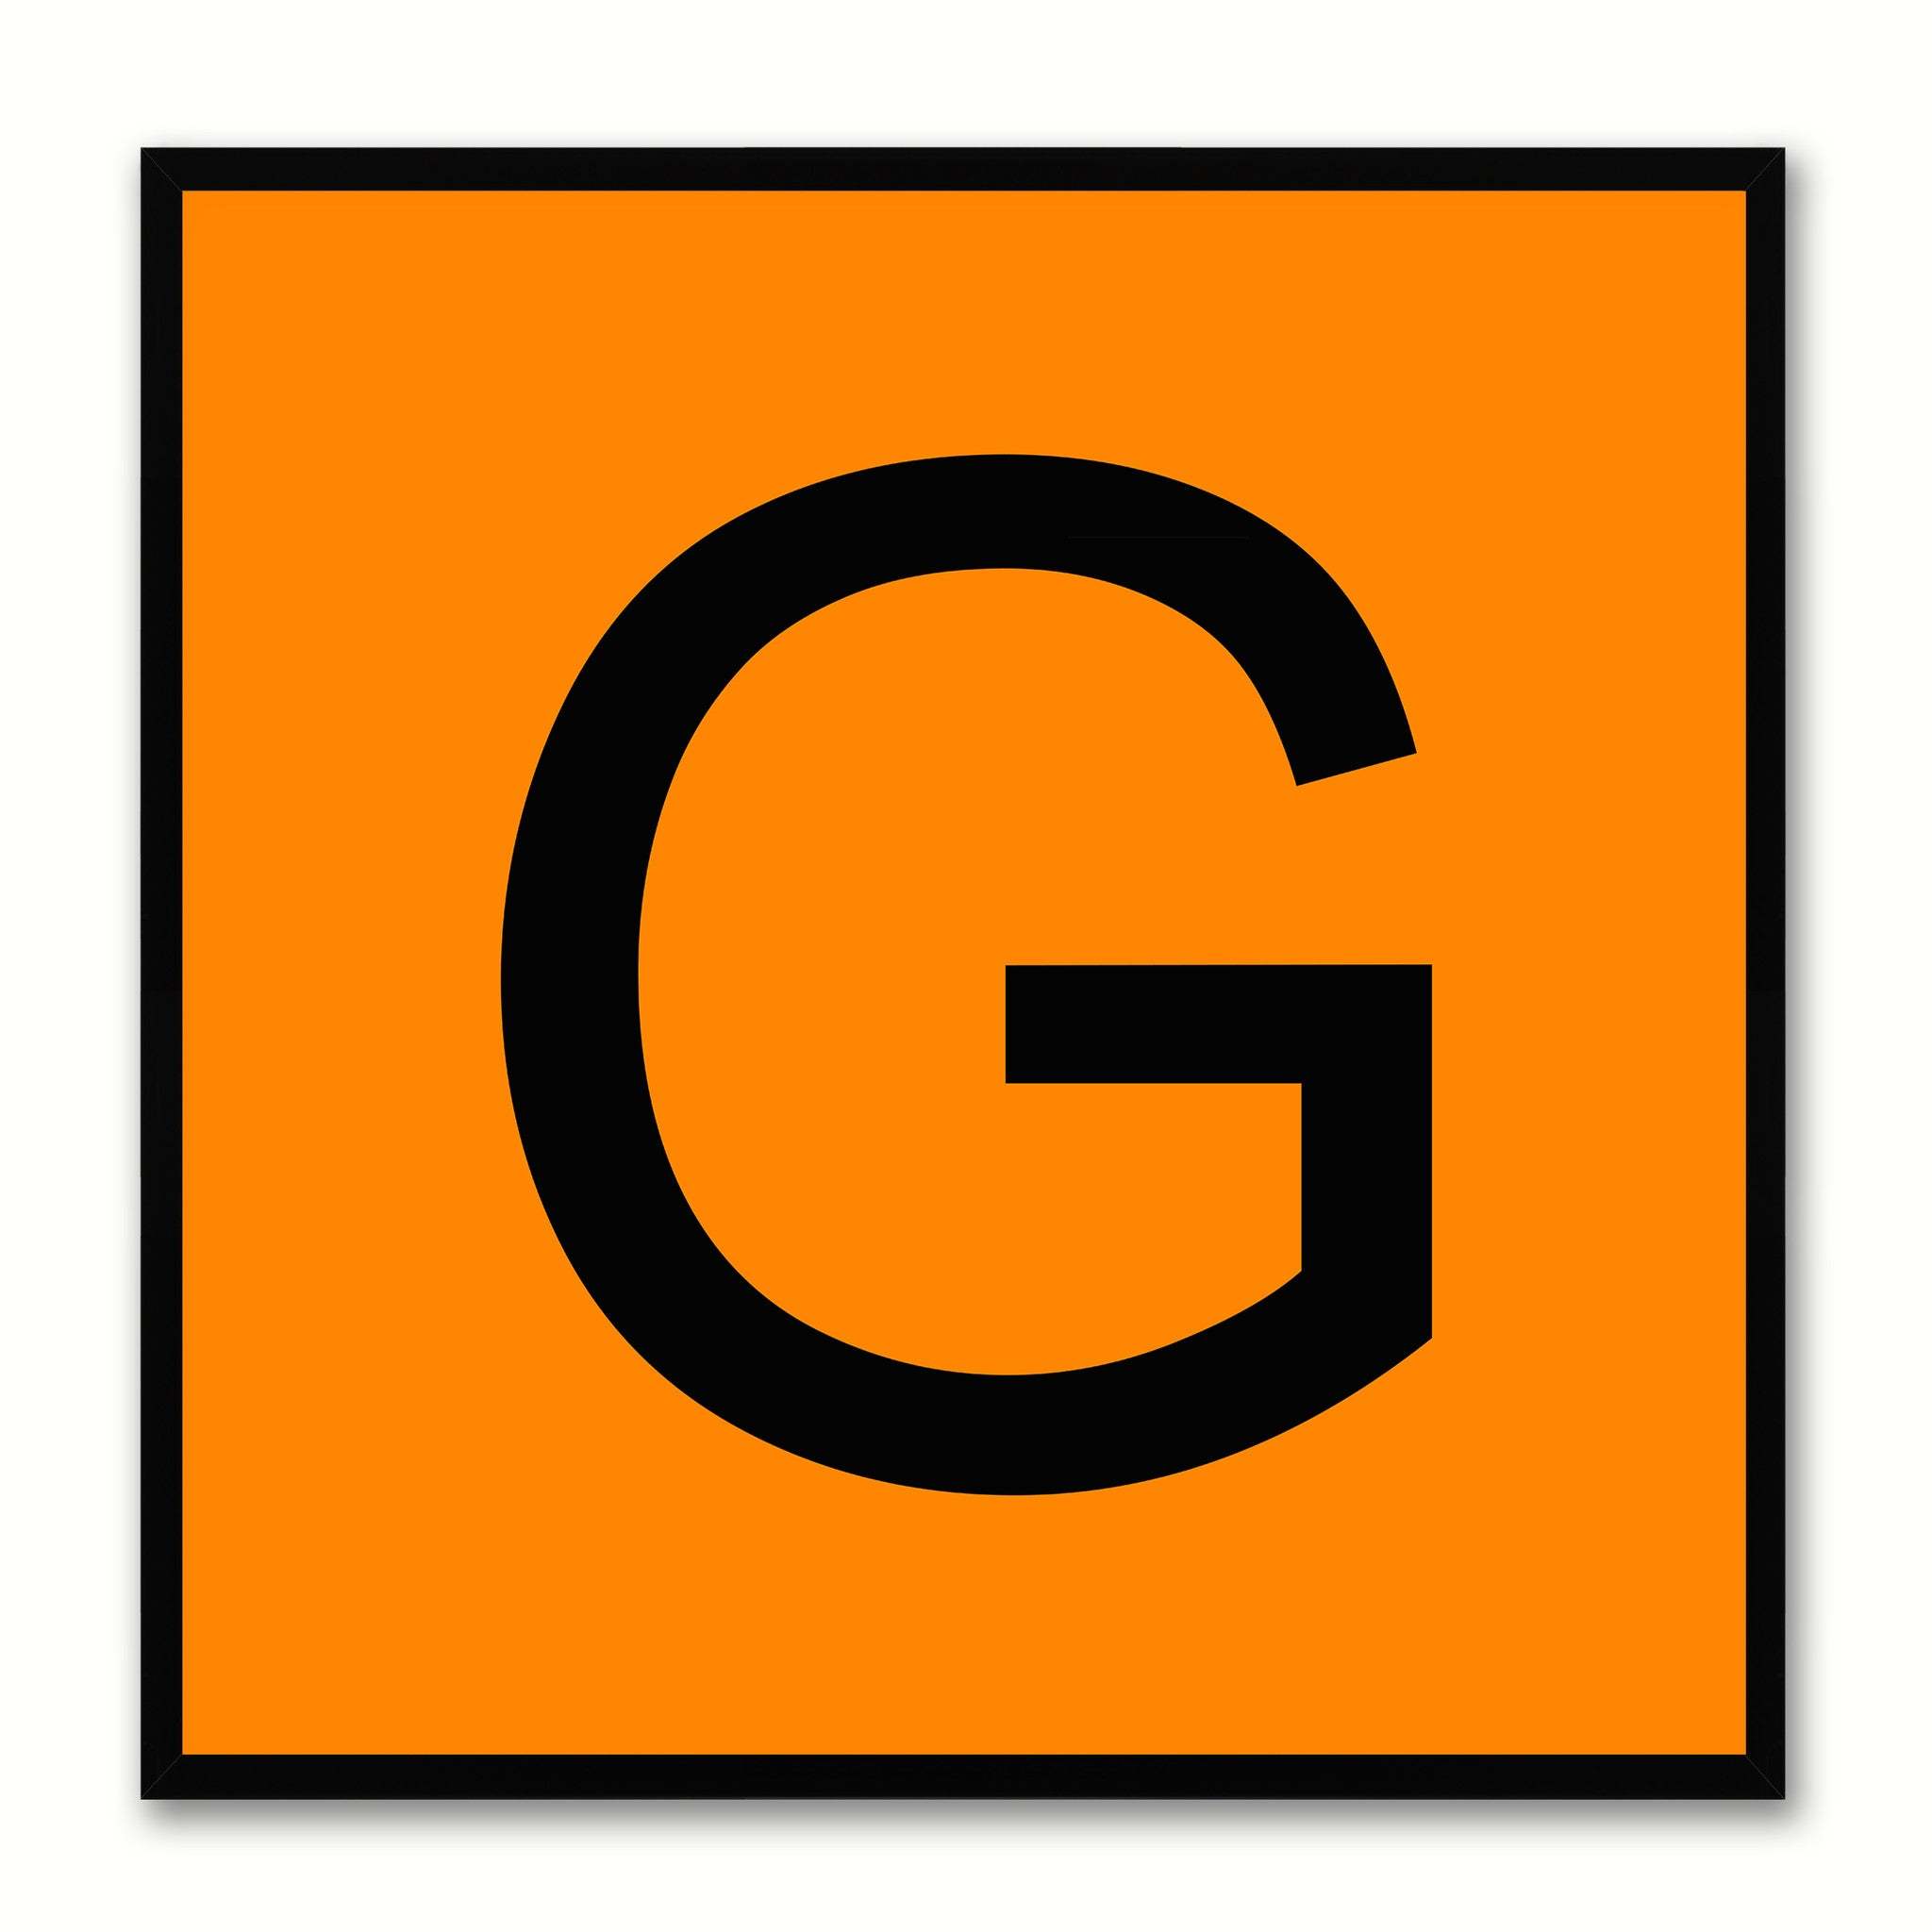 Alphabet G Orange Canvas Print Black Frame Kids Bedroom Wall Décor Home Art